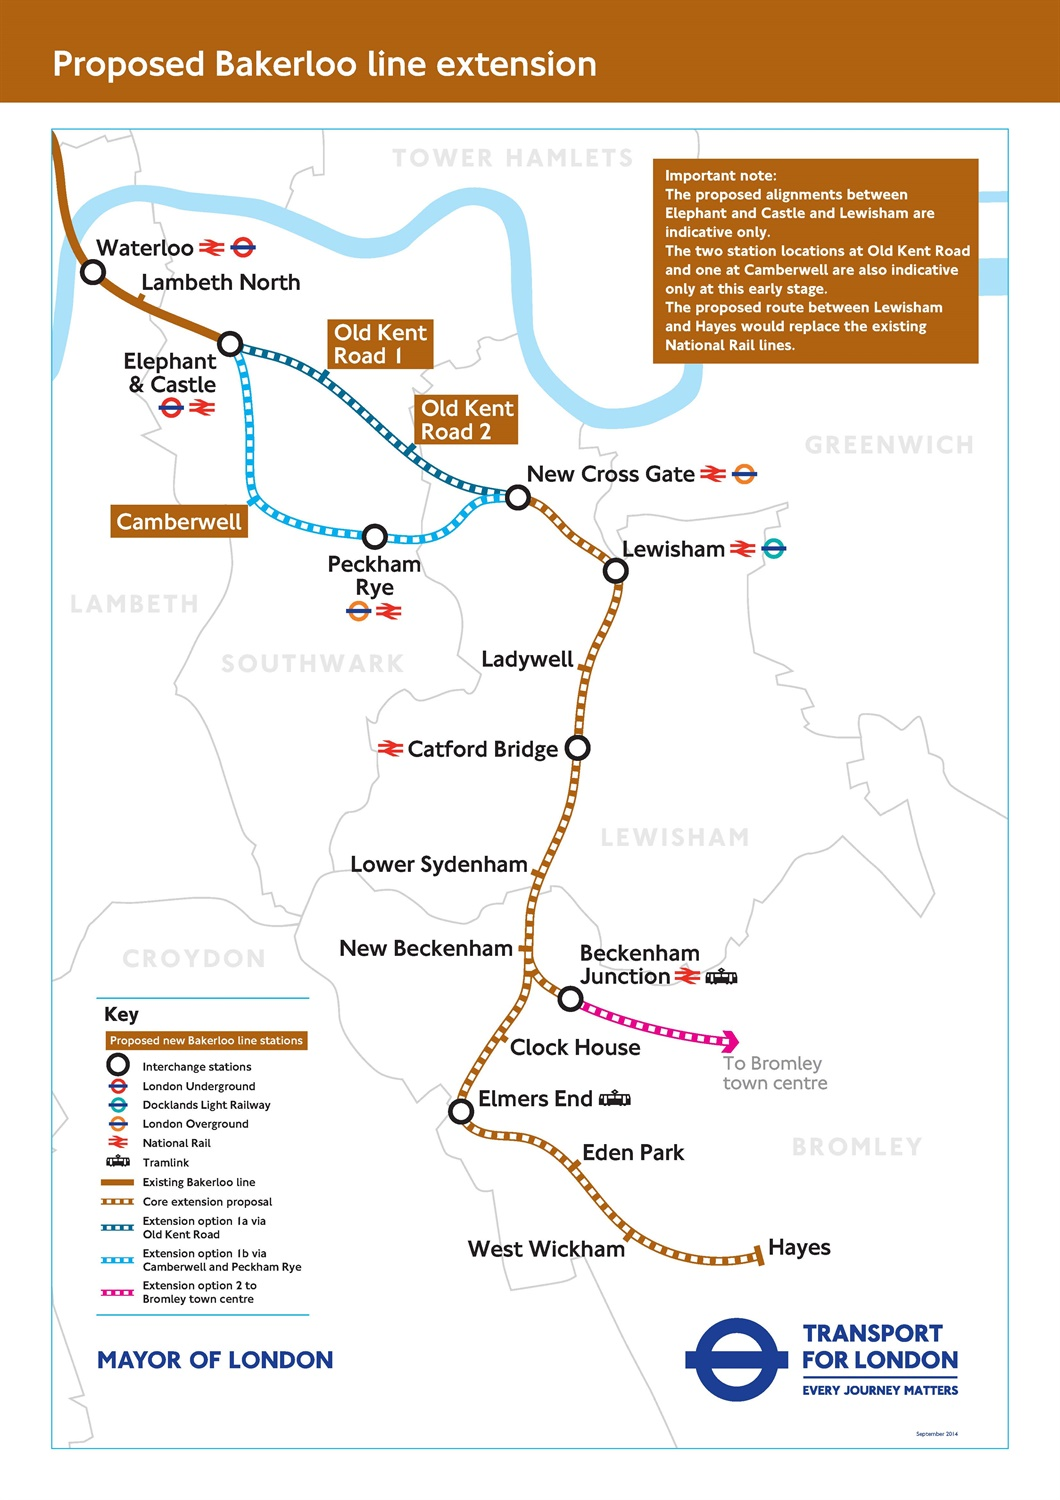 Bakerloo Line extension